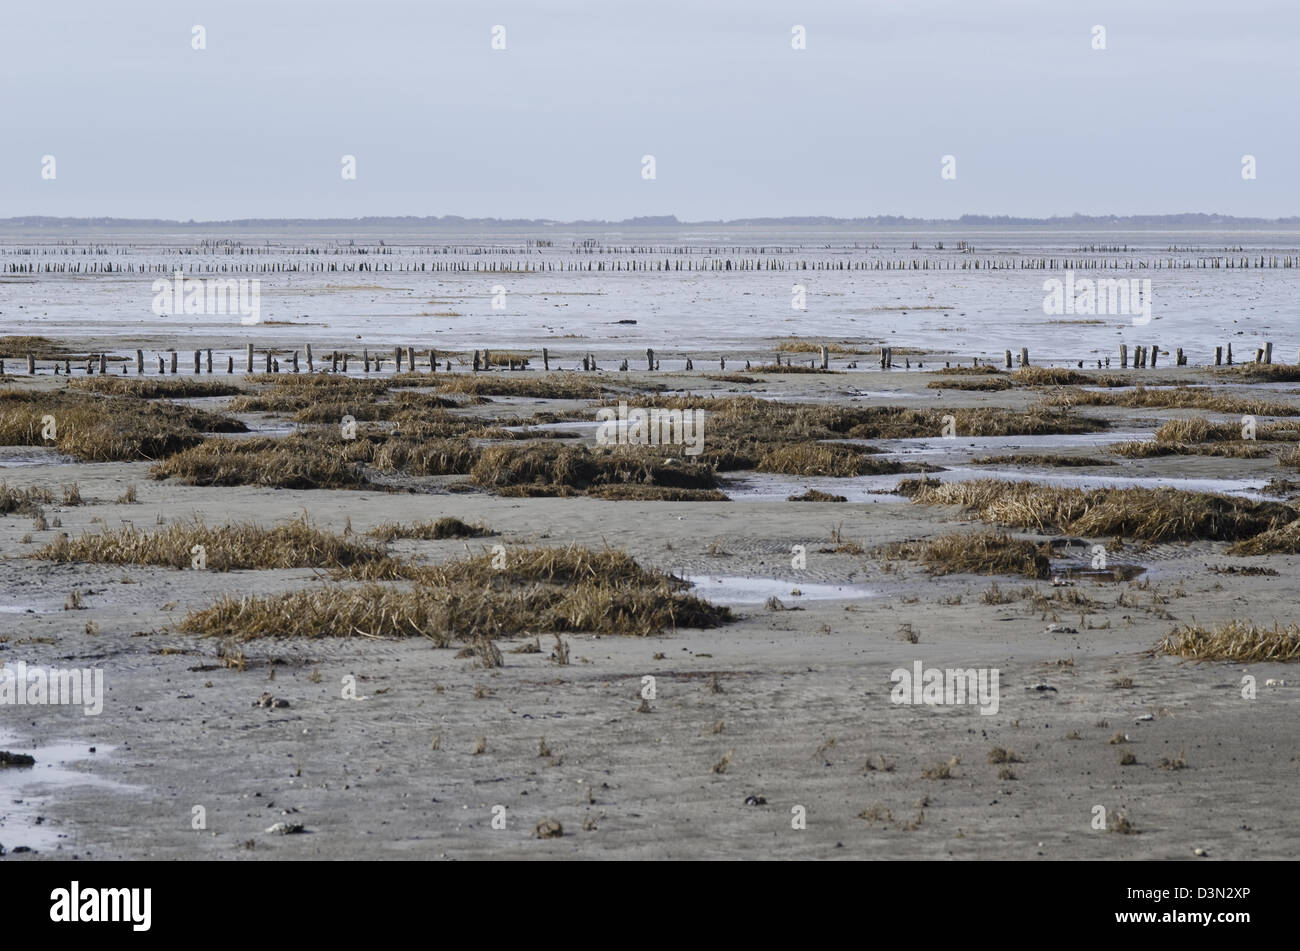 Wadden Sea, the intertidal zone in the southeastern part of the North Sea Stock Photo